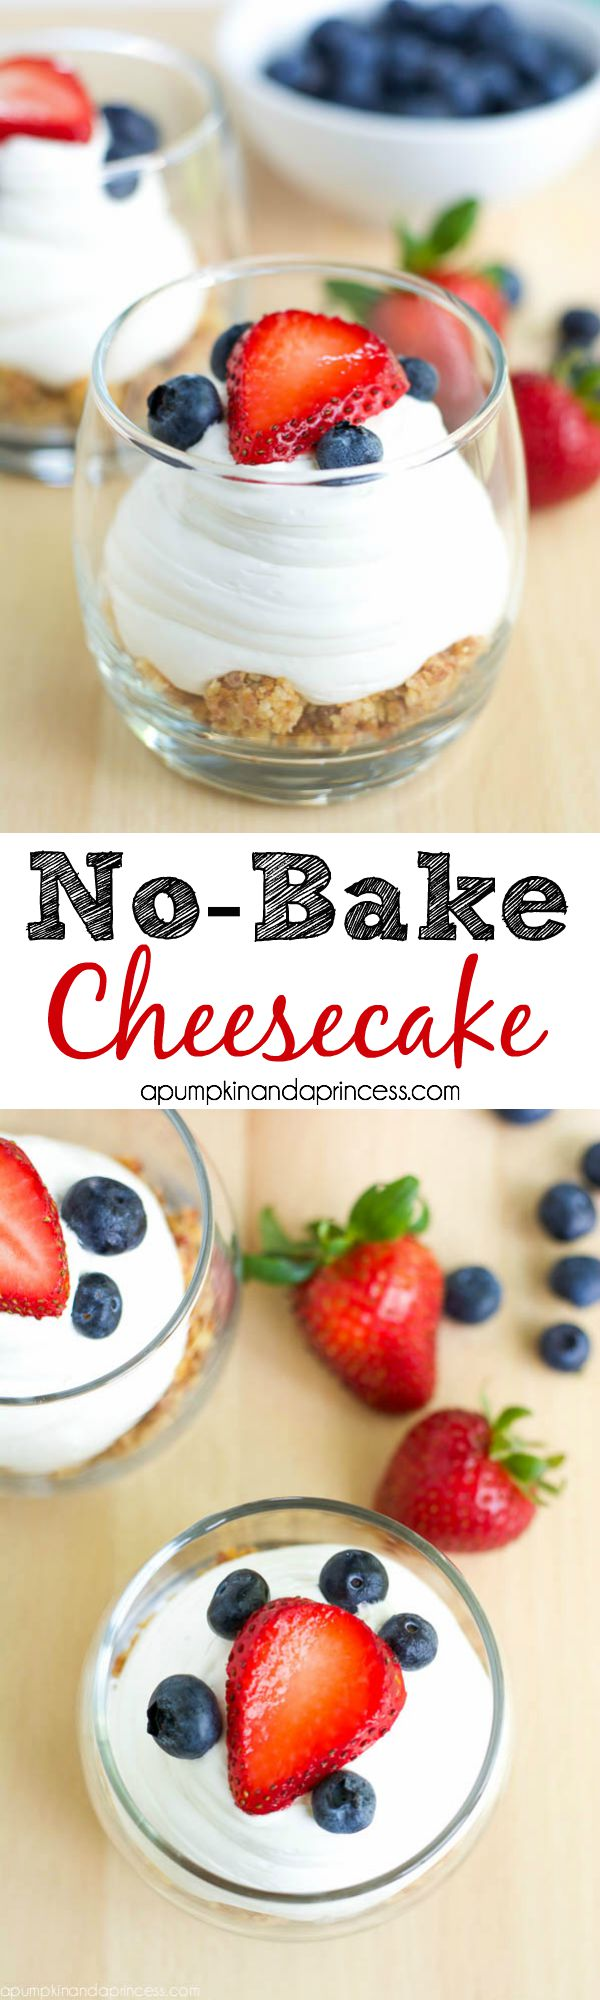 No-Bake Cheesecake in a jar